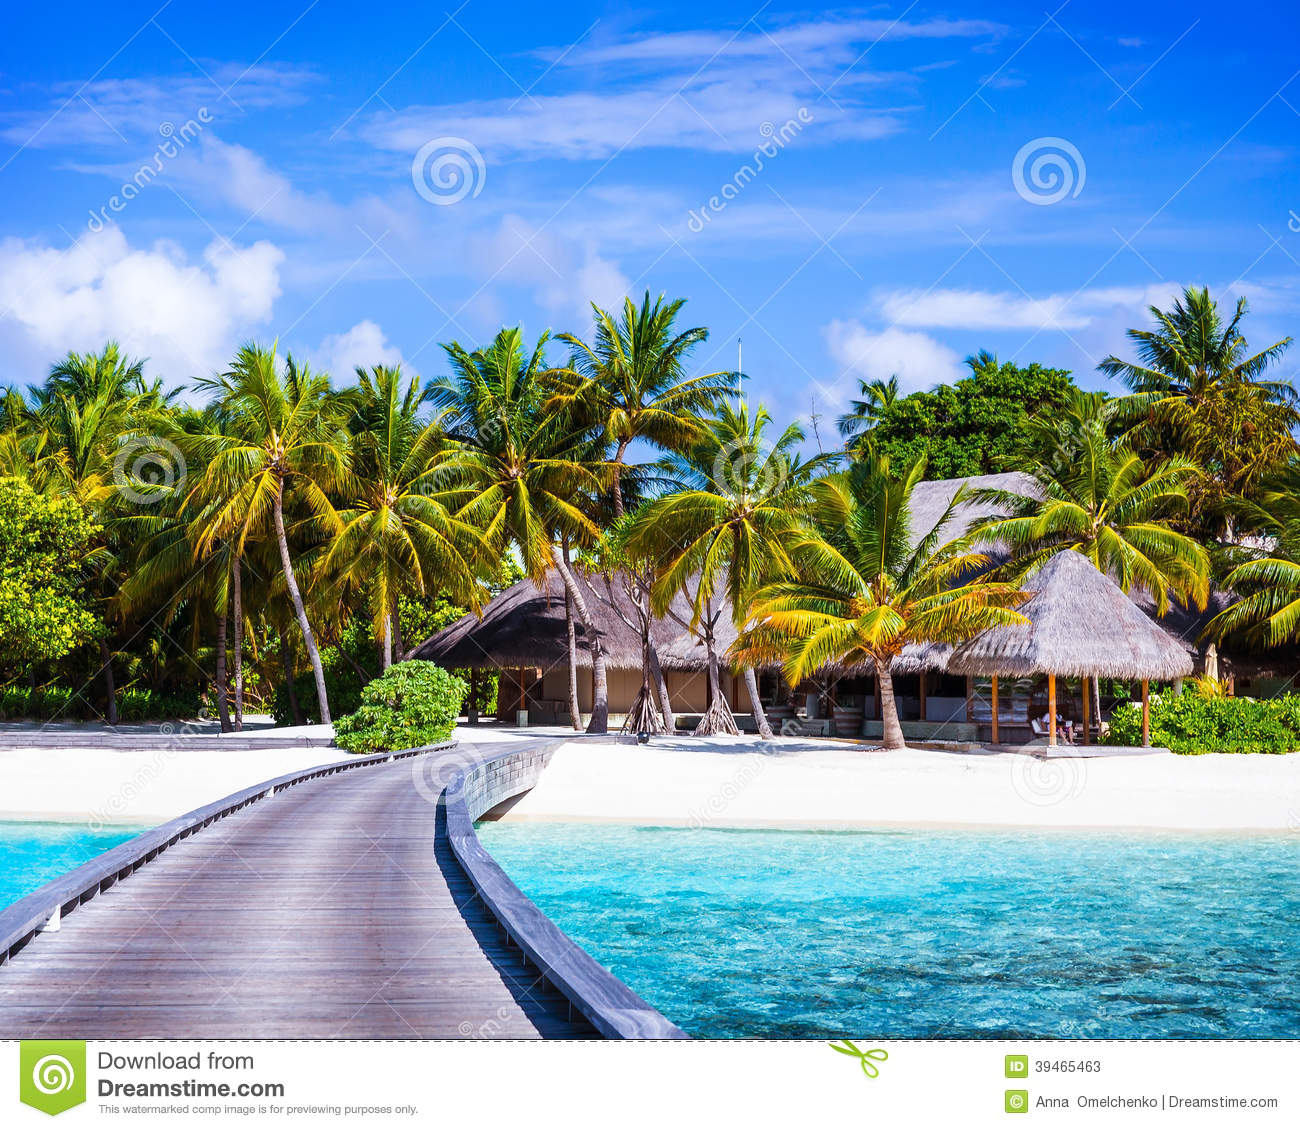 Beach Island: Luxury Beach Resort Stock Photo